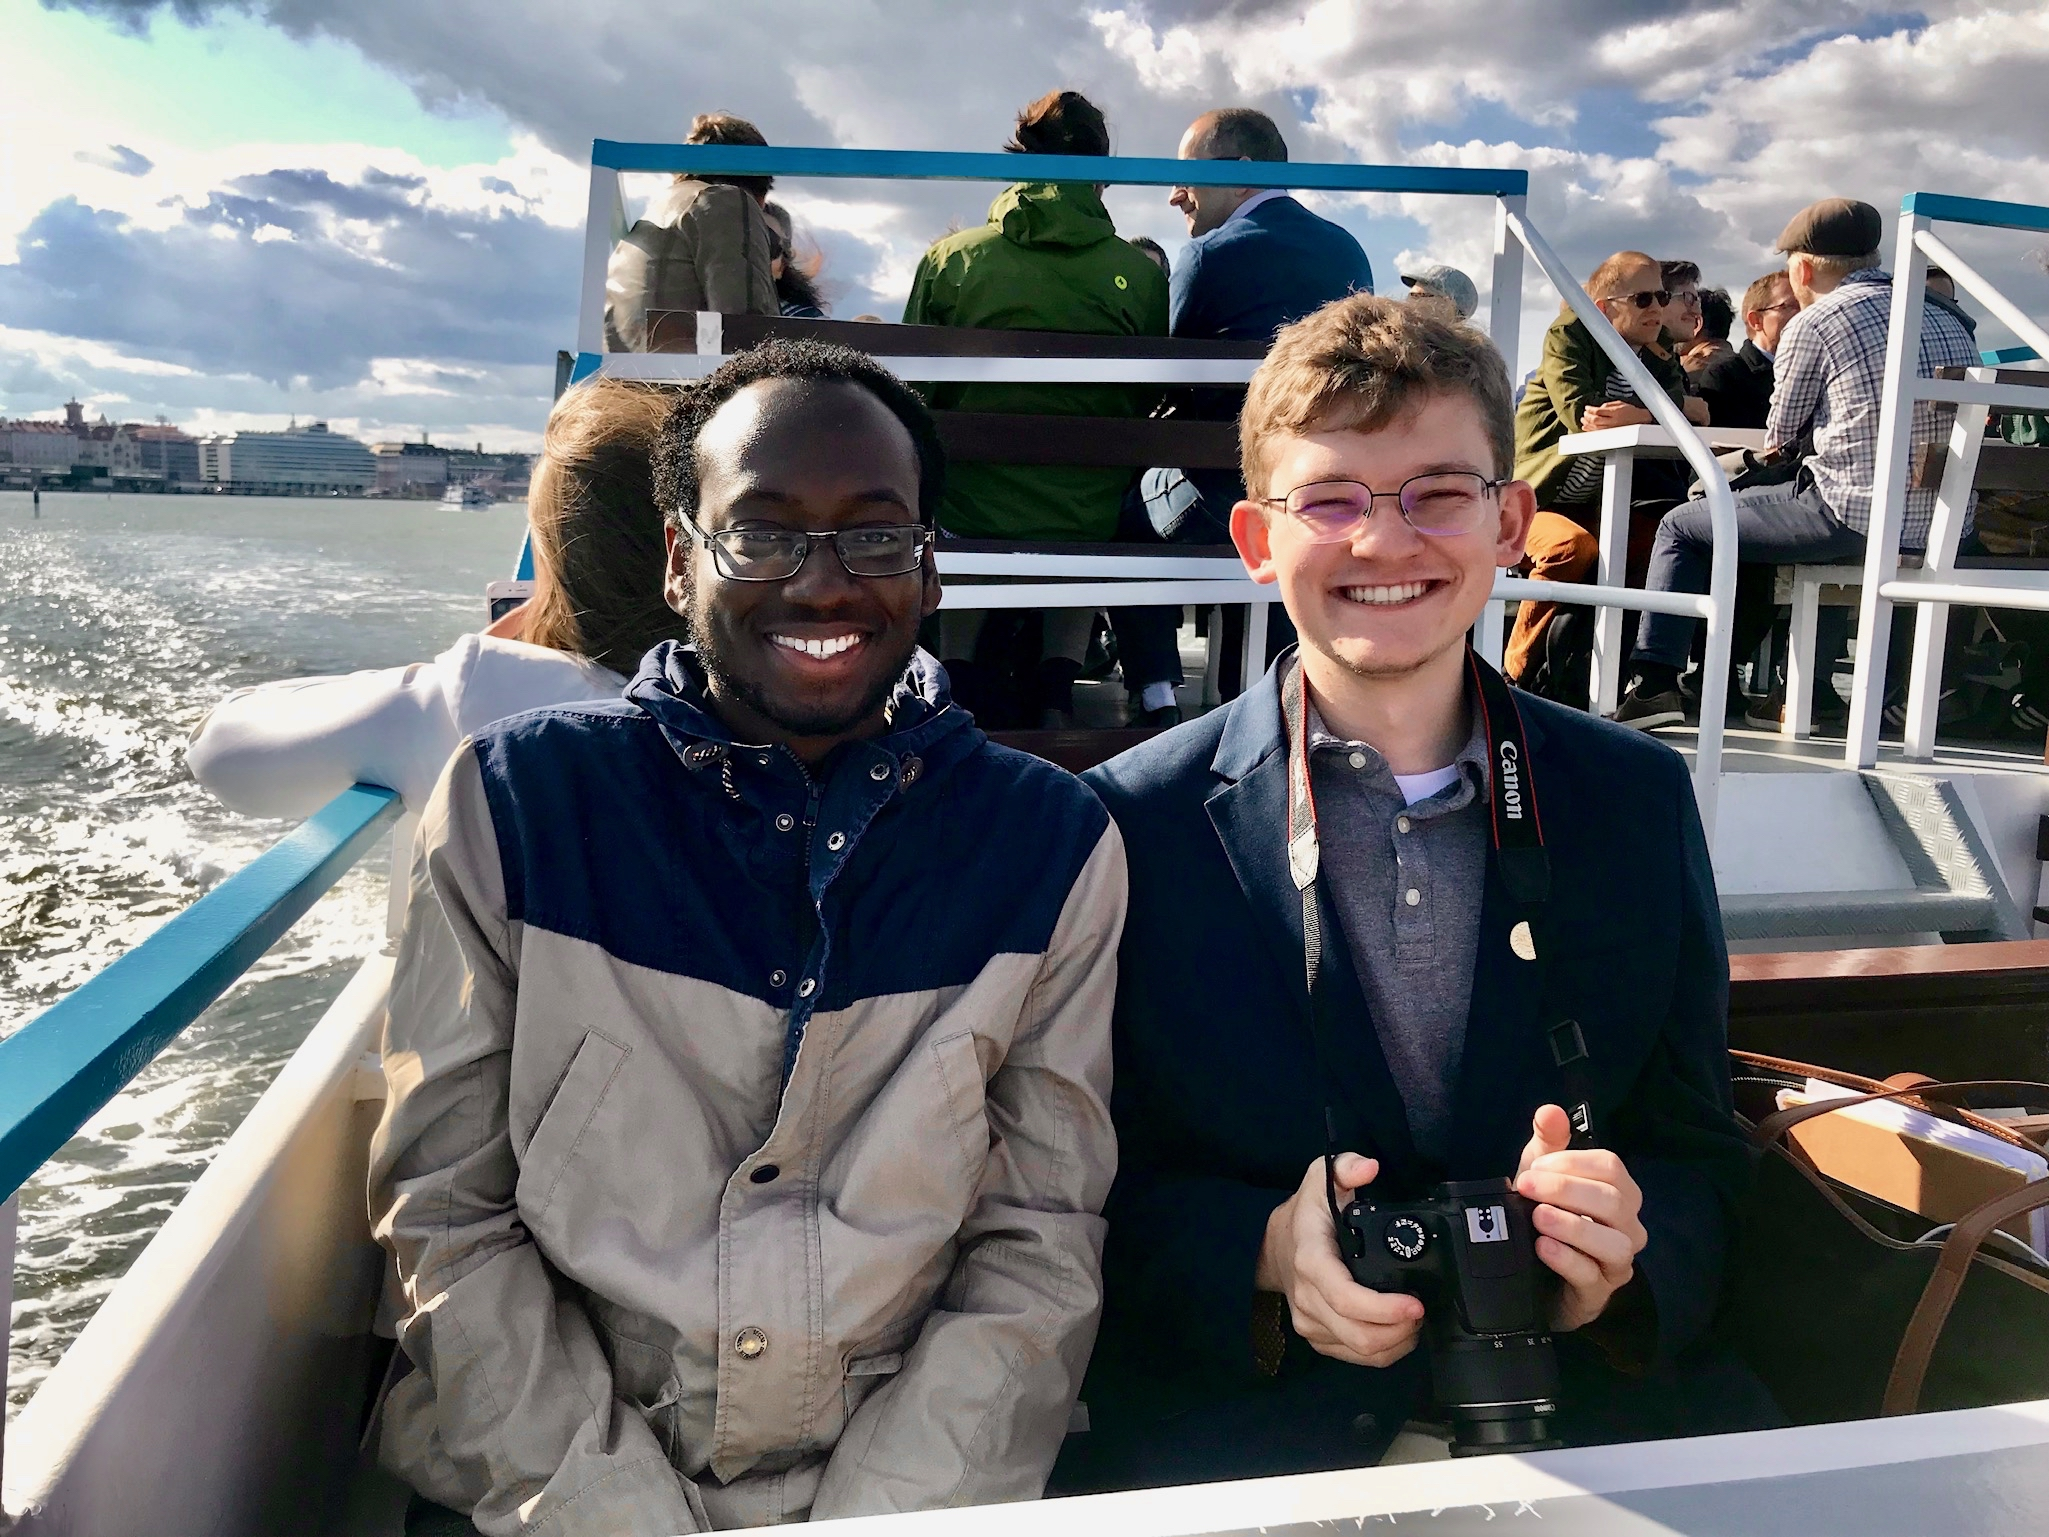 Two undergraduate STEM student members of the STS Futures Lab on a ferry in Helsinki, where they co-presented STS research with Lab co-PIs Emily York and Shannon N. Conley